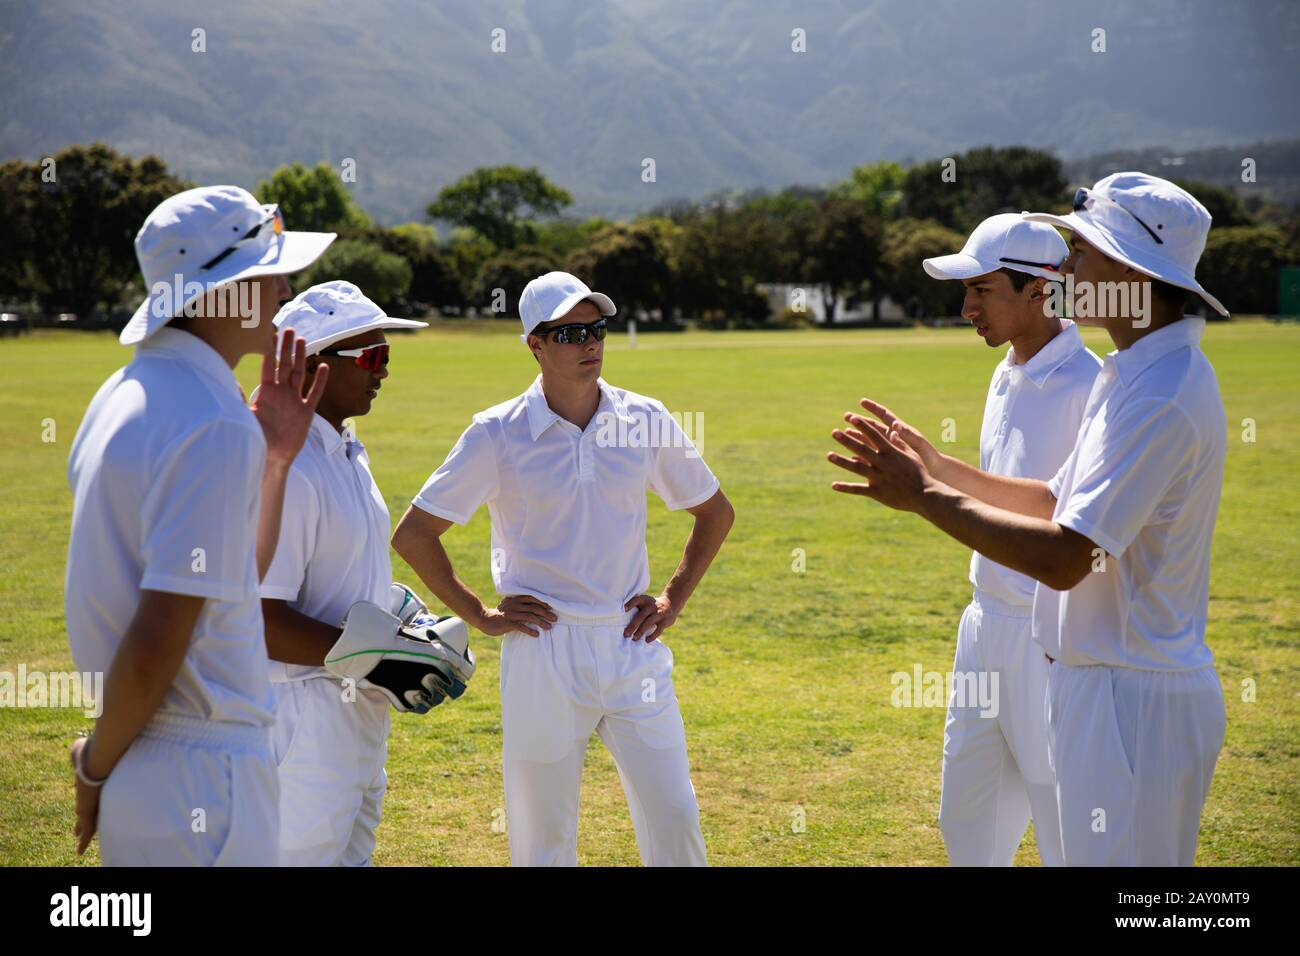 Cricket team discussing on a pitch Stock Photo